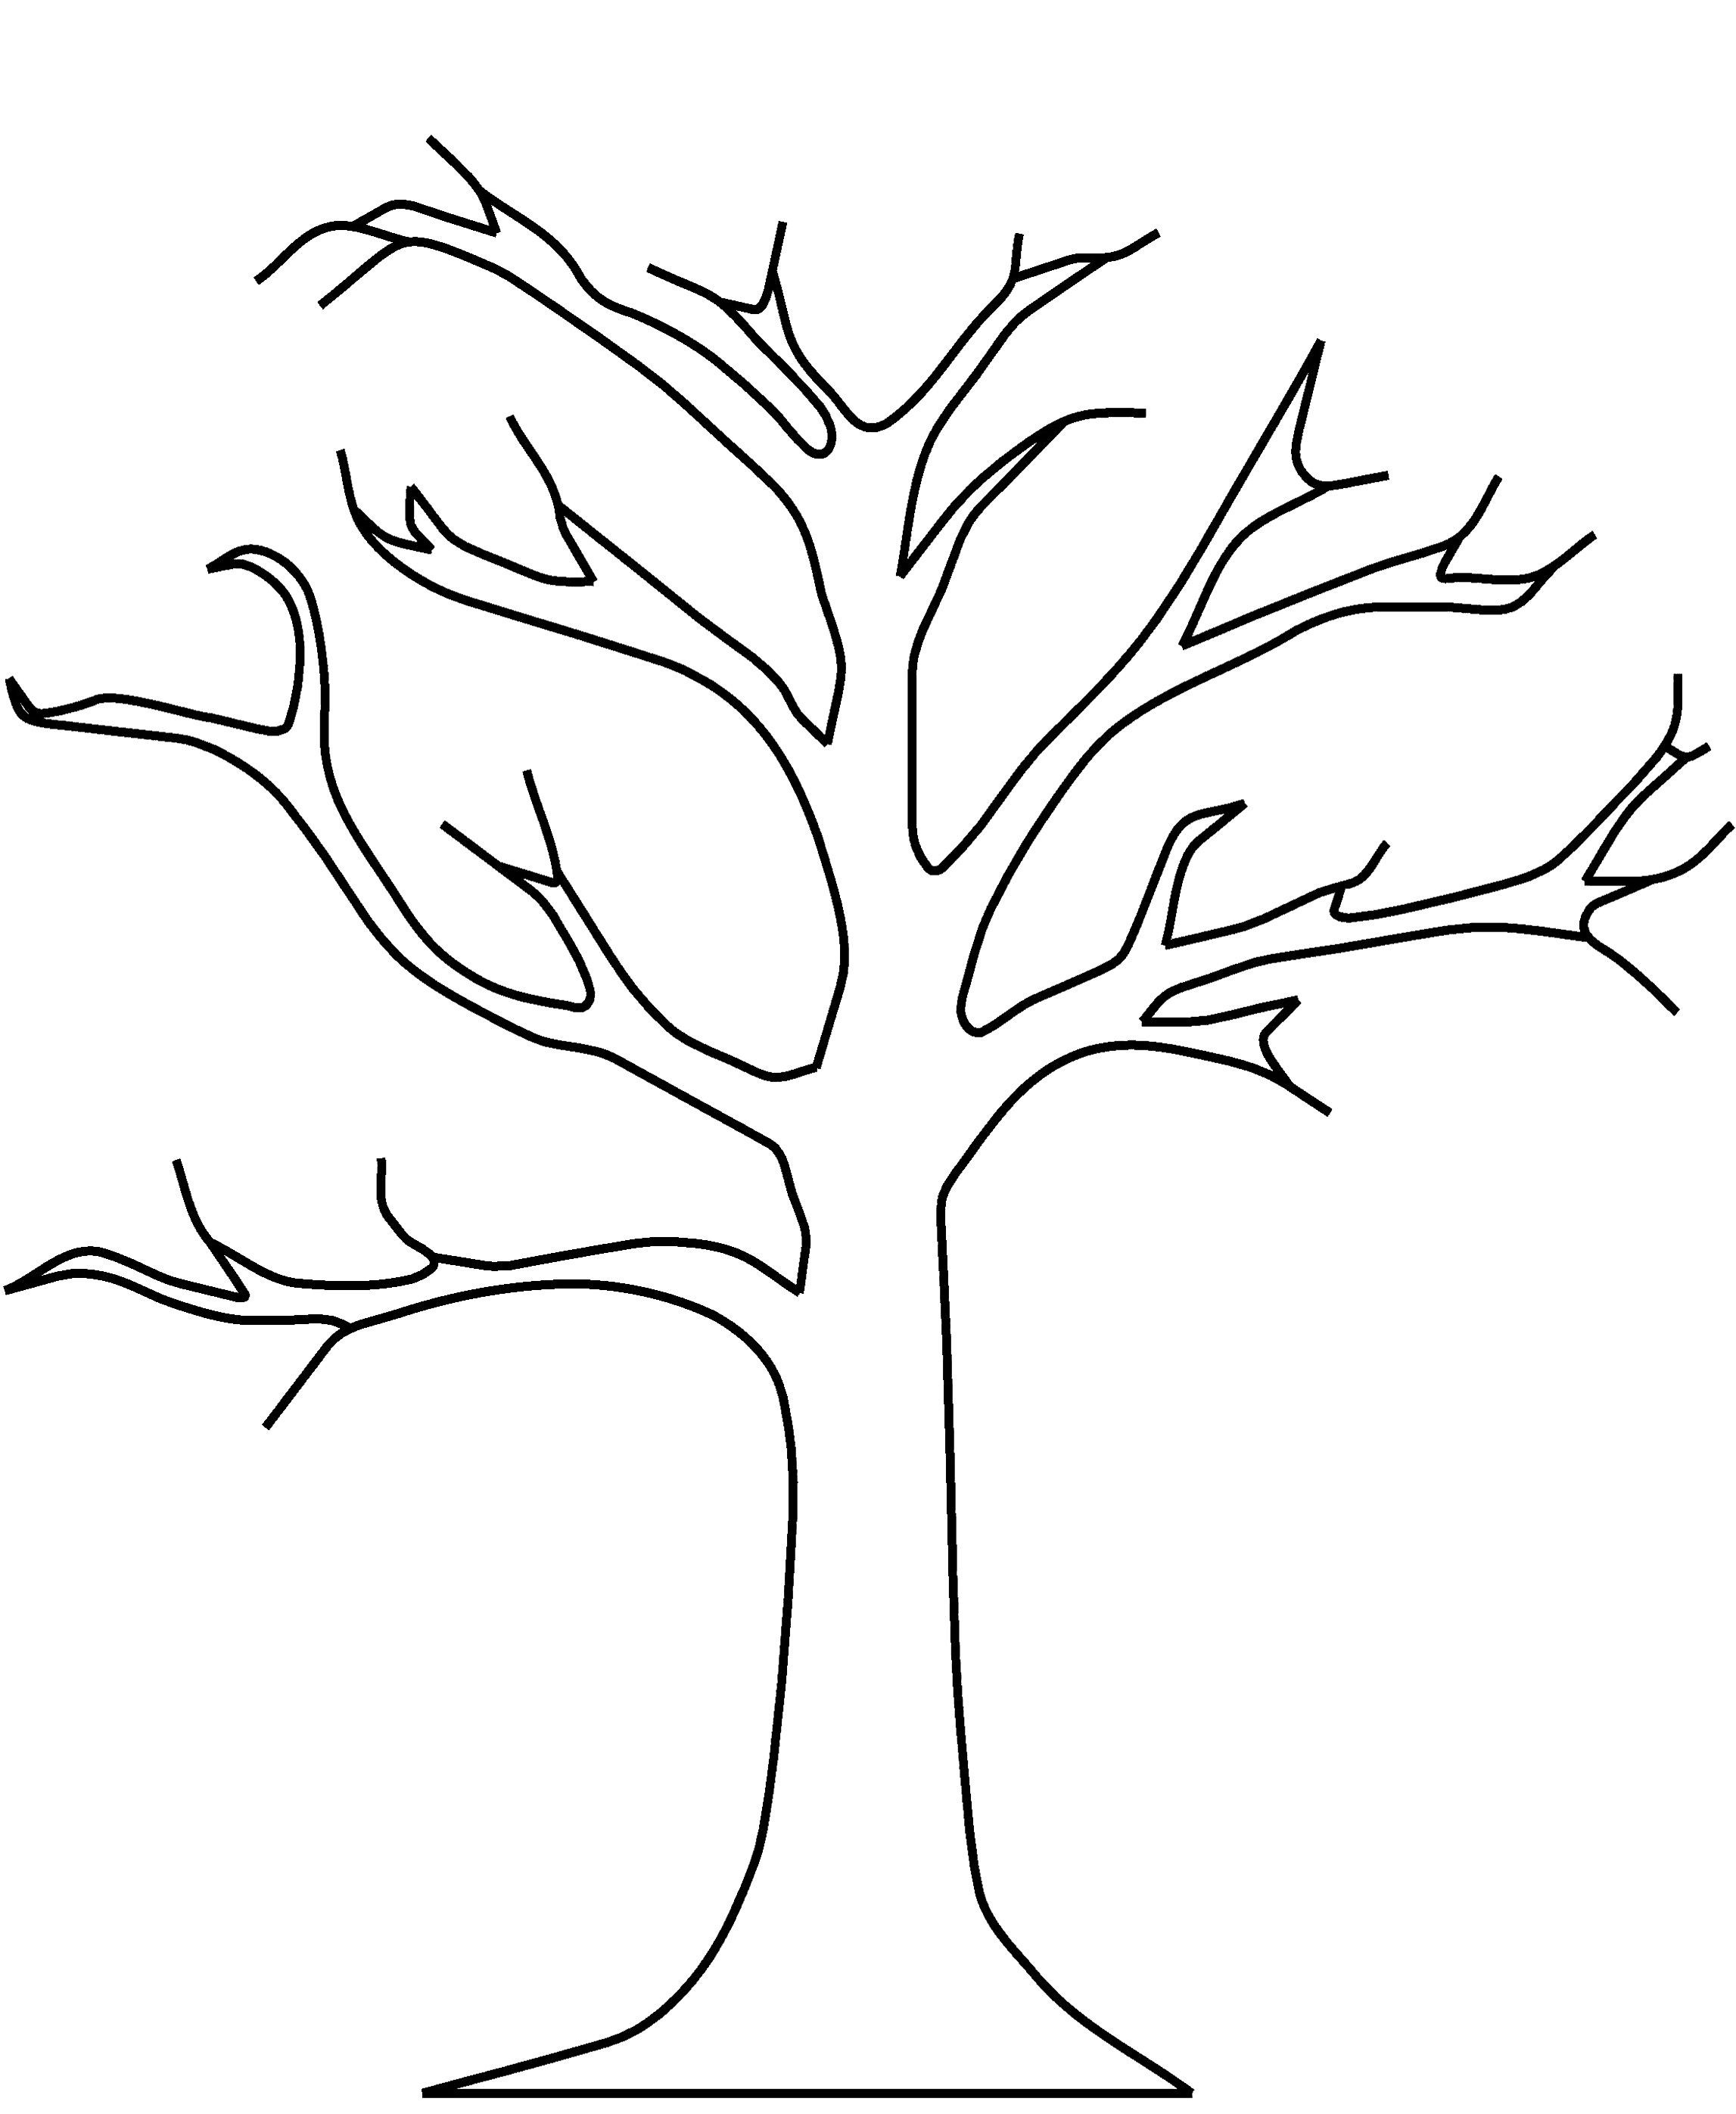 Noted Coloring Picture A Tree Pages Unknown Resolutions Printable Of Apple Tree Coloring Page with Coloring Pages Apple orchard Download Download